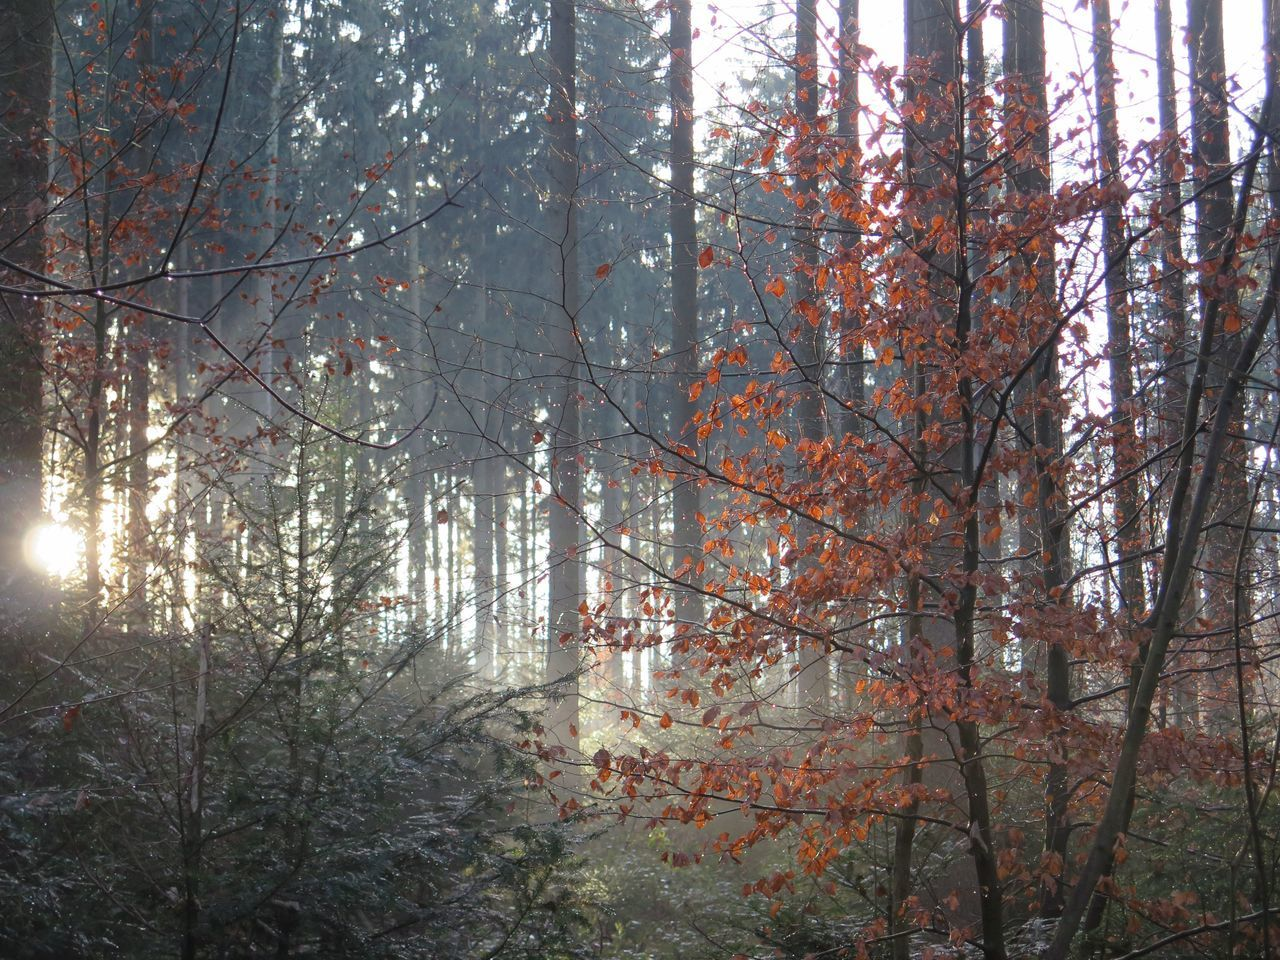 Trees Nature Photography Cold Days Forest Photography Sunrais Naturelover Trees And Nature